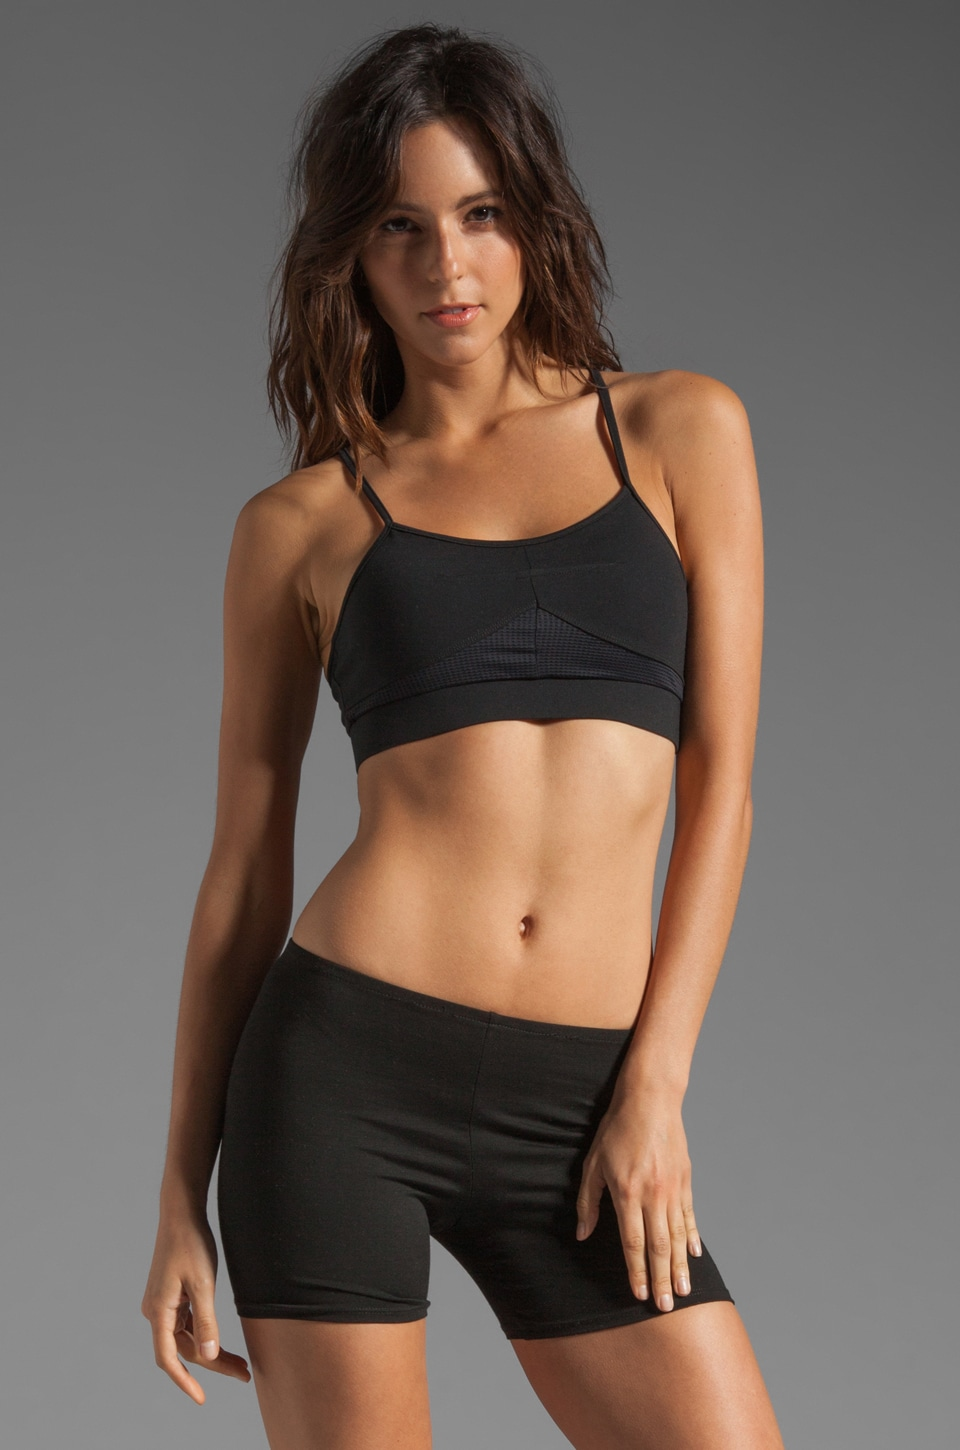 SOLOW Eclon Workout Bra in Black